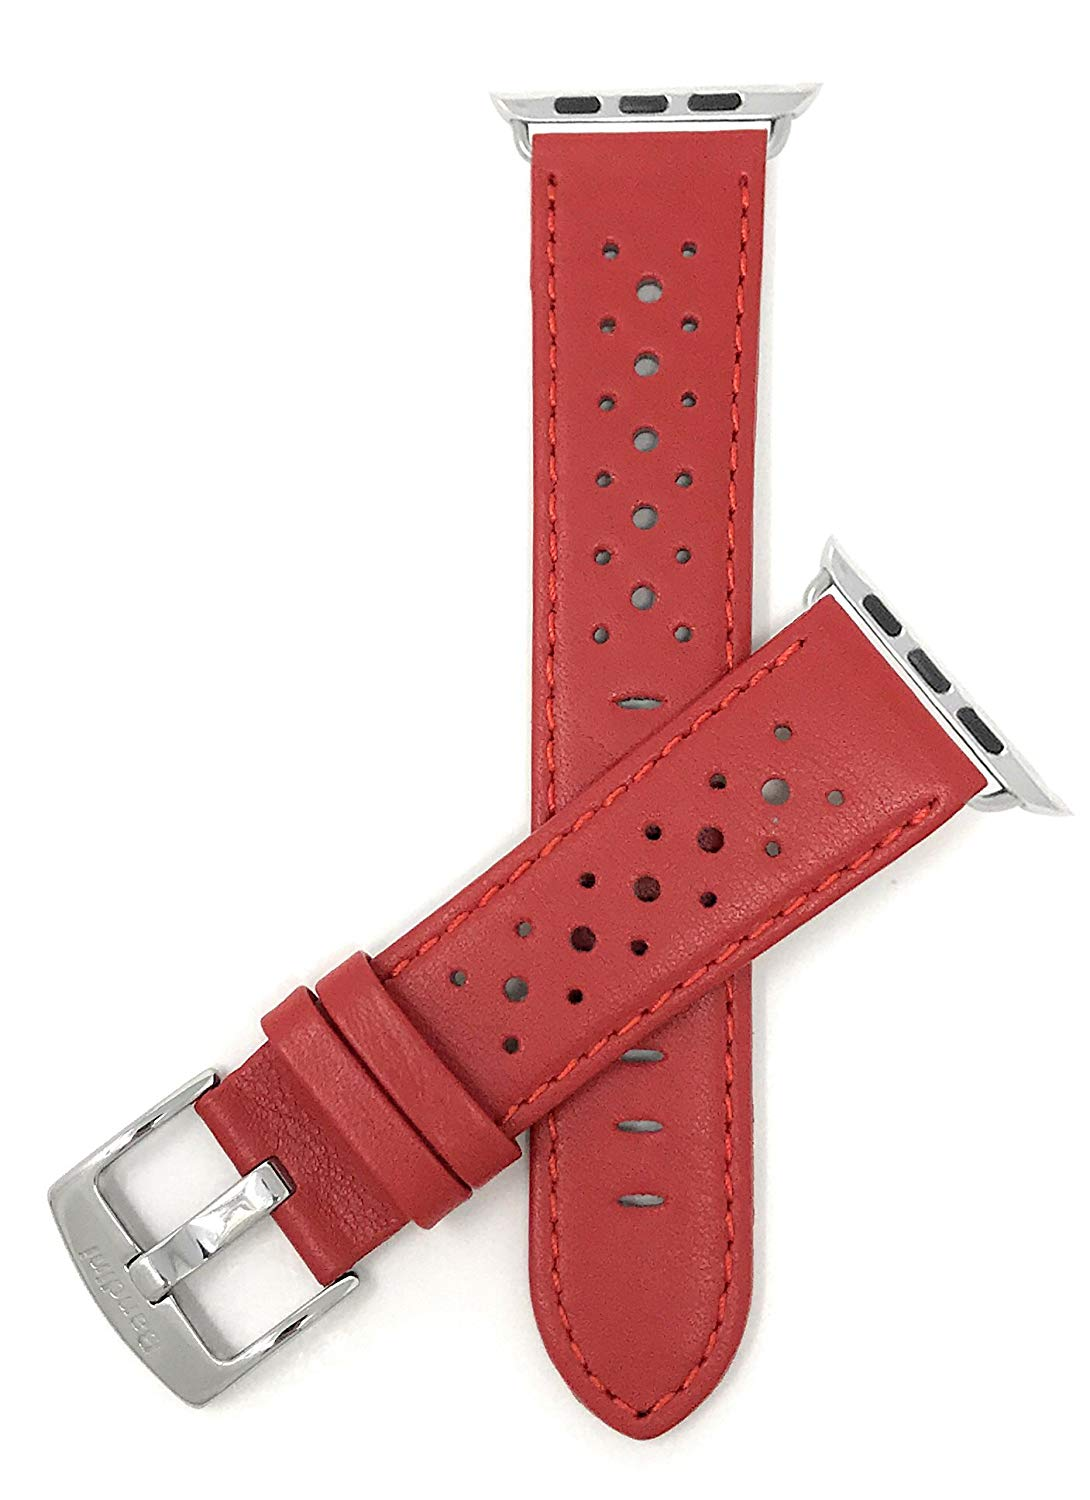 212e1c69a Get Quotations · Bandini Replacement Watch Band for Apple Watch 38mm, GT  Rally Perforrated, Vented Racer Leather